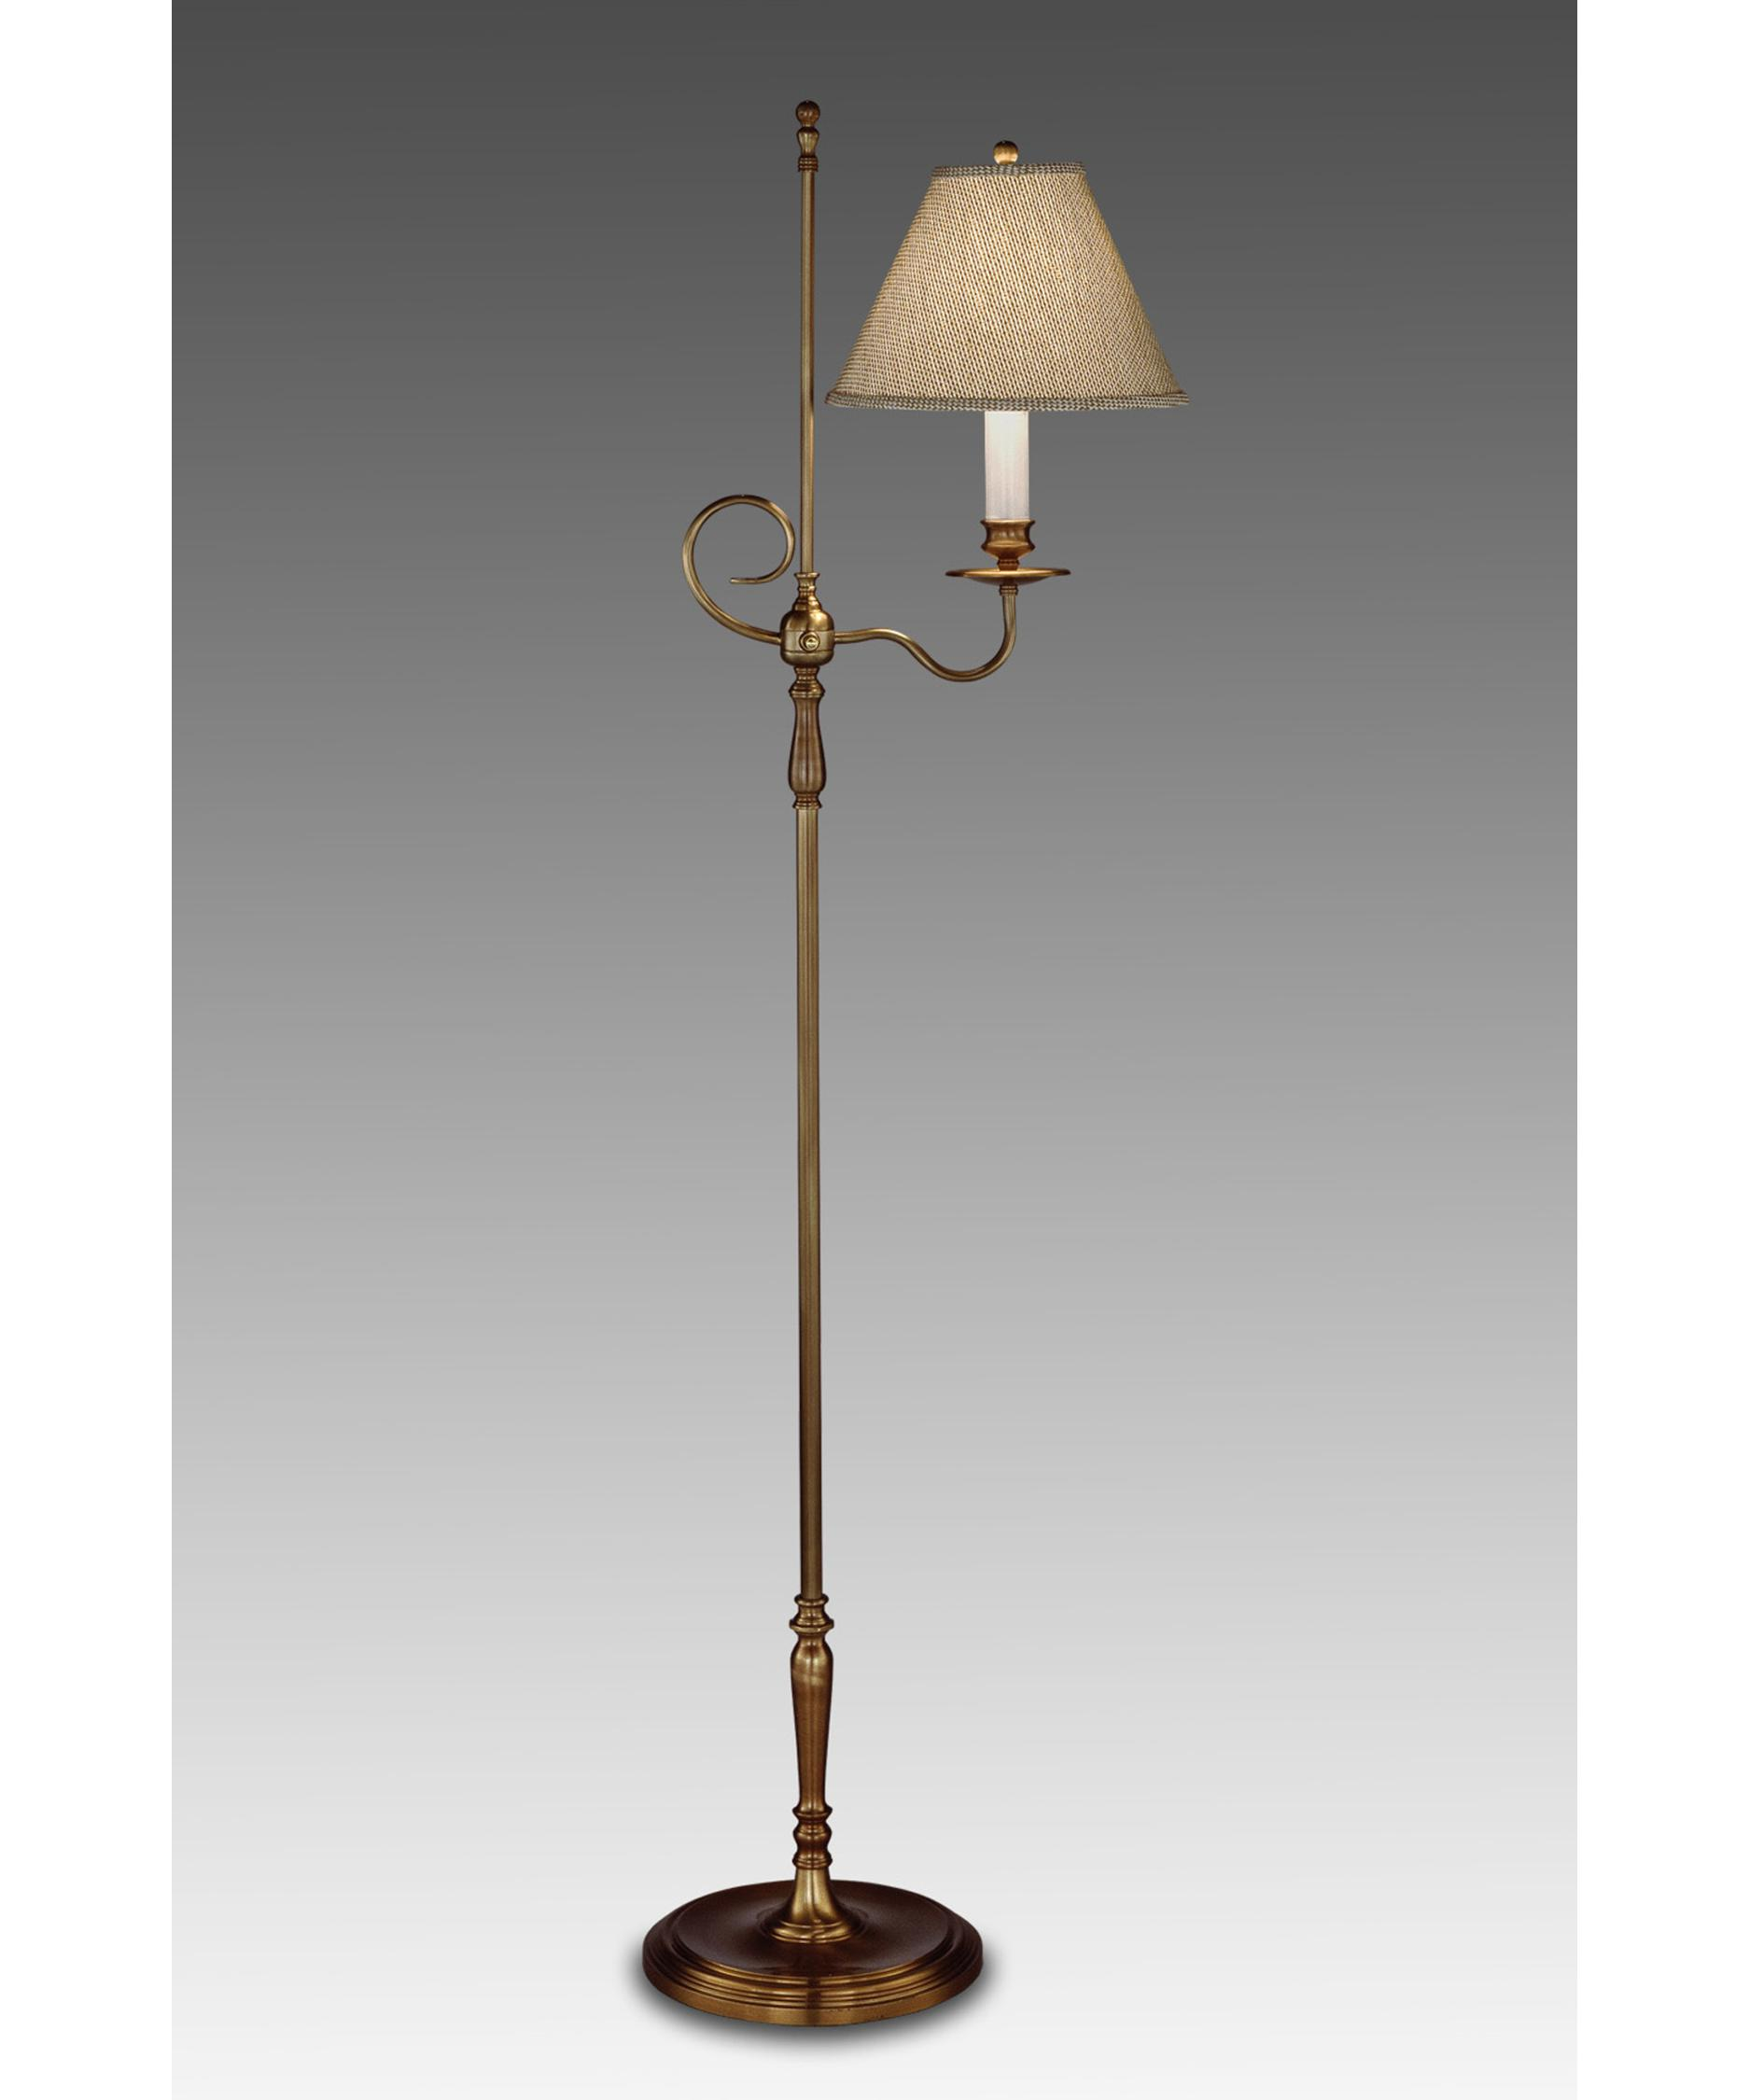 remington lamps photo - 5